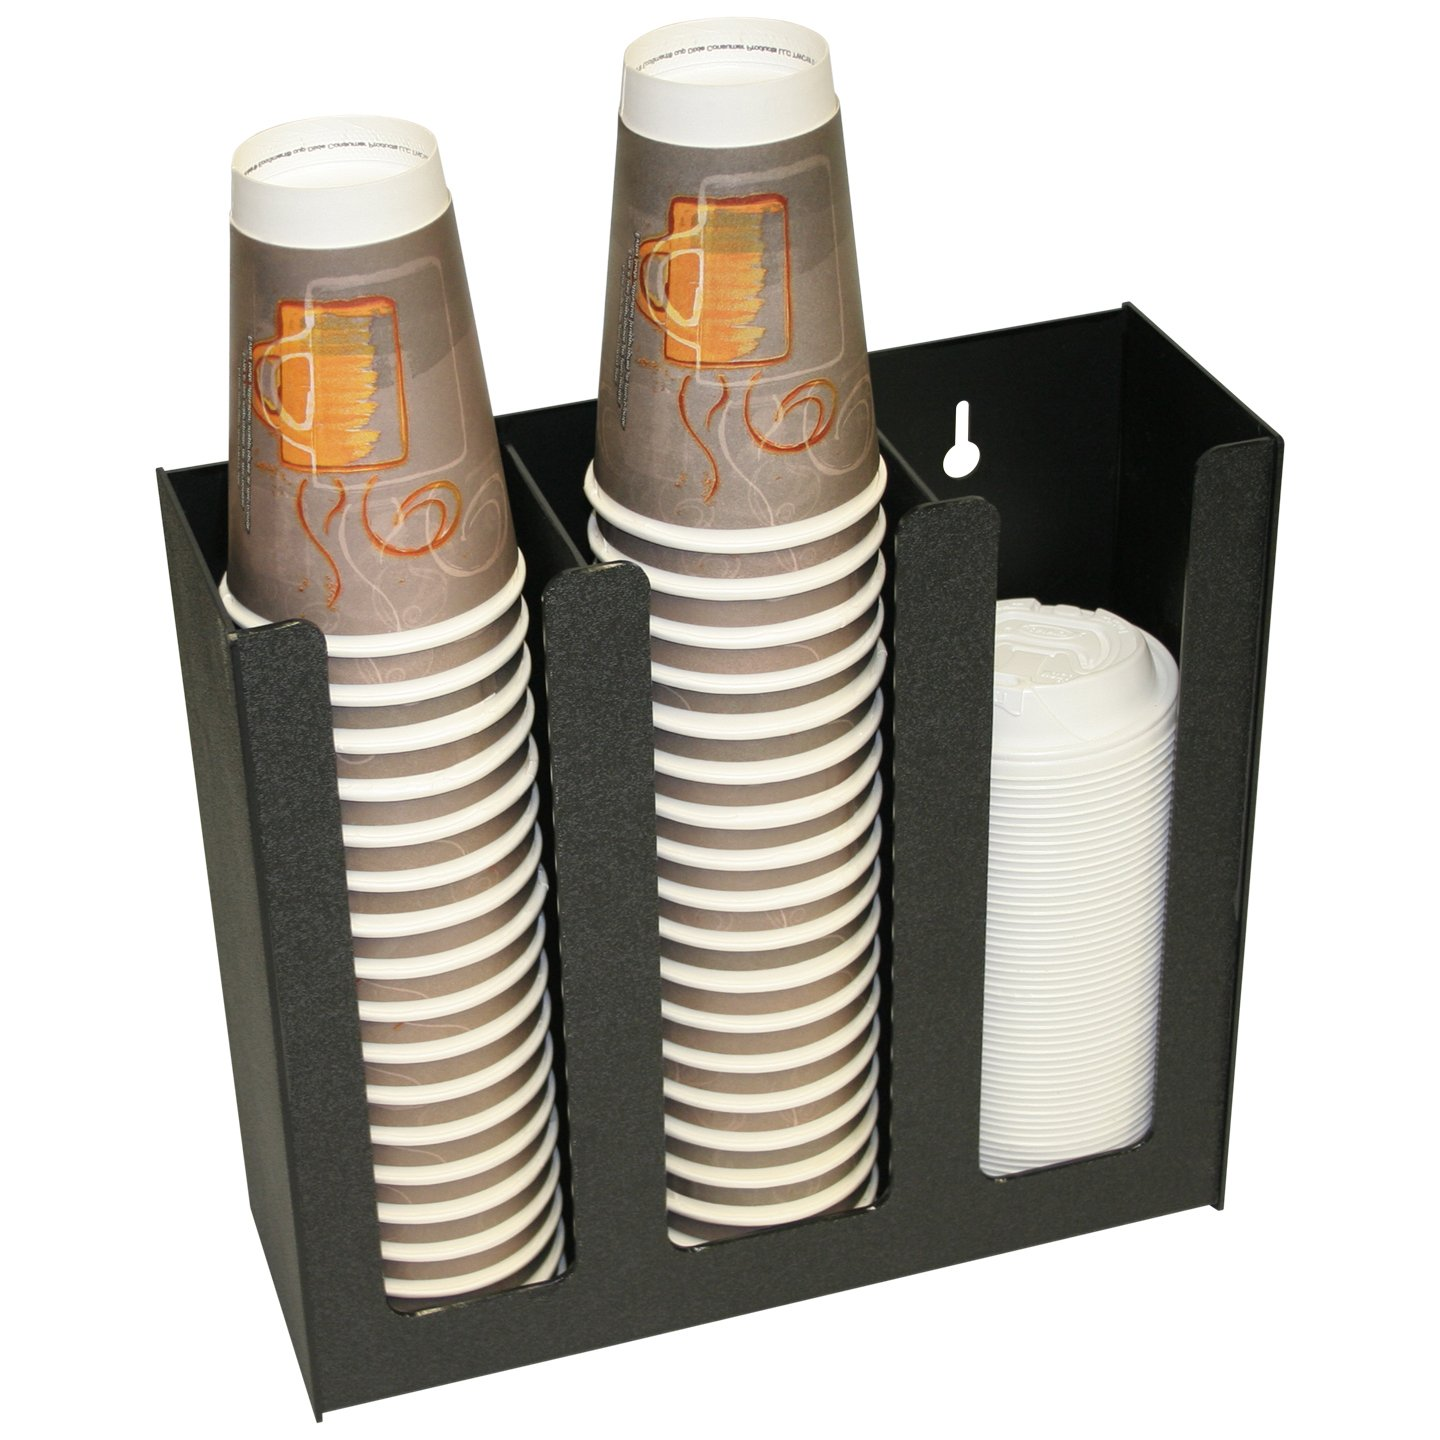 Coffee Cups or Lid Holder, 3 Columns 12''high. Non-Breakable, Now With Wall-Mount Holes. Proudly Made in the USA! and made by PPM. by Plastic & Products Marketing PPM (Image #2)